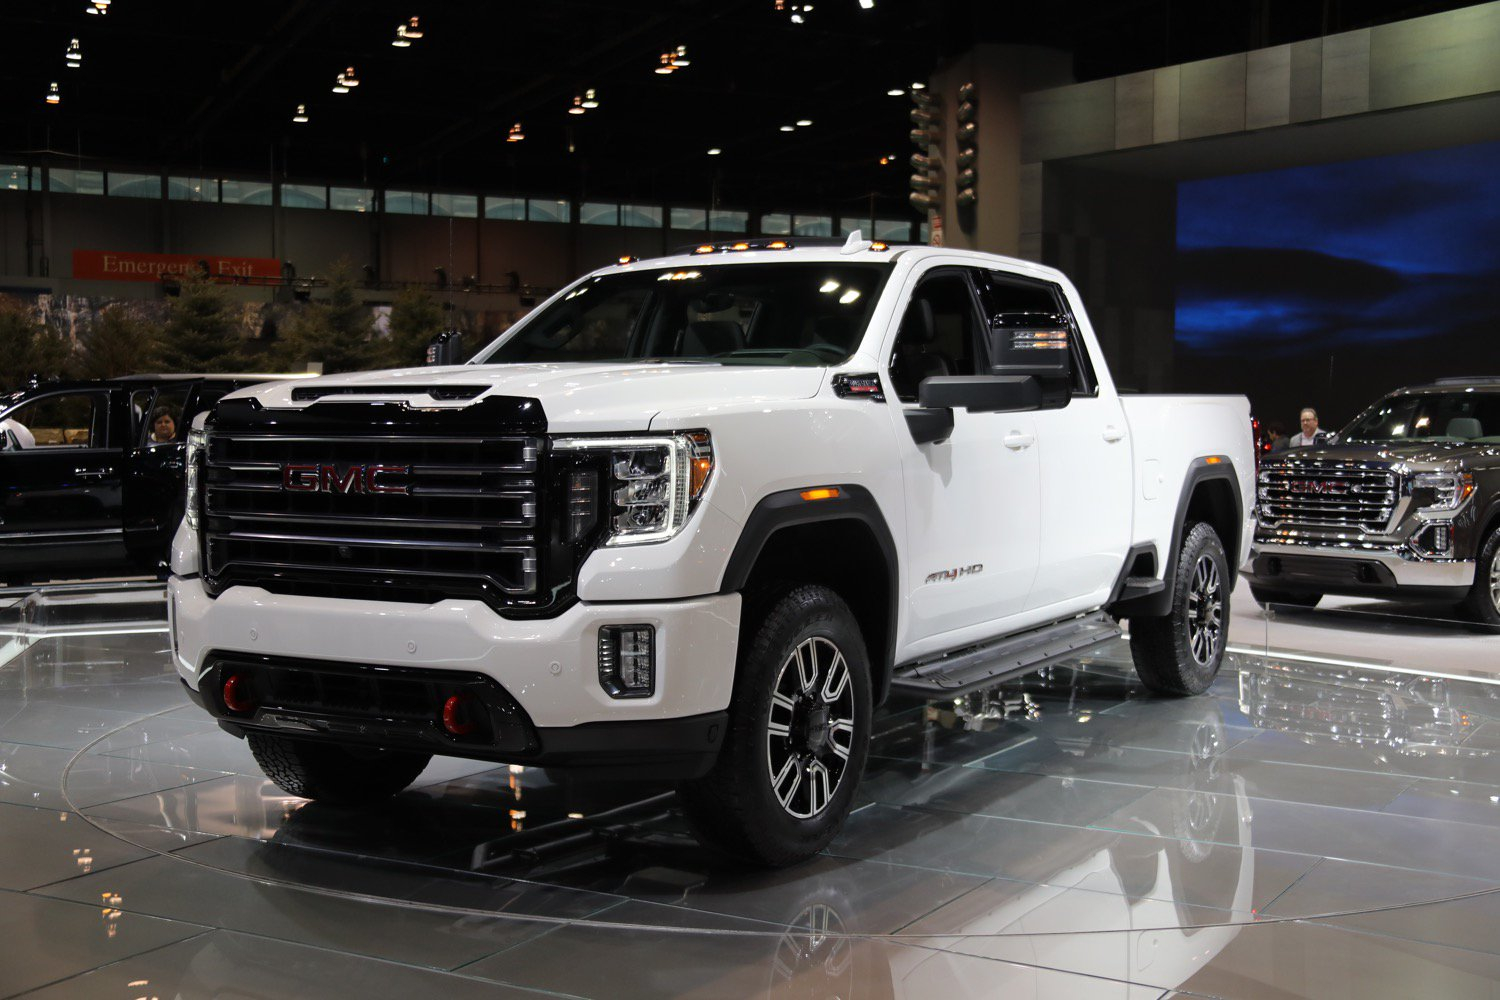 2020 gmc sierra 2500hd at4 price, colors, specs | 2022 gmc